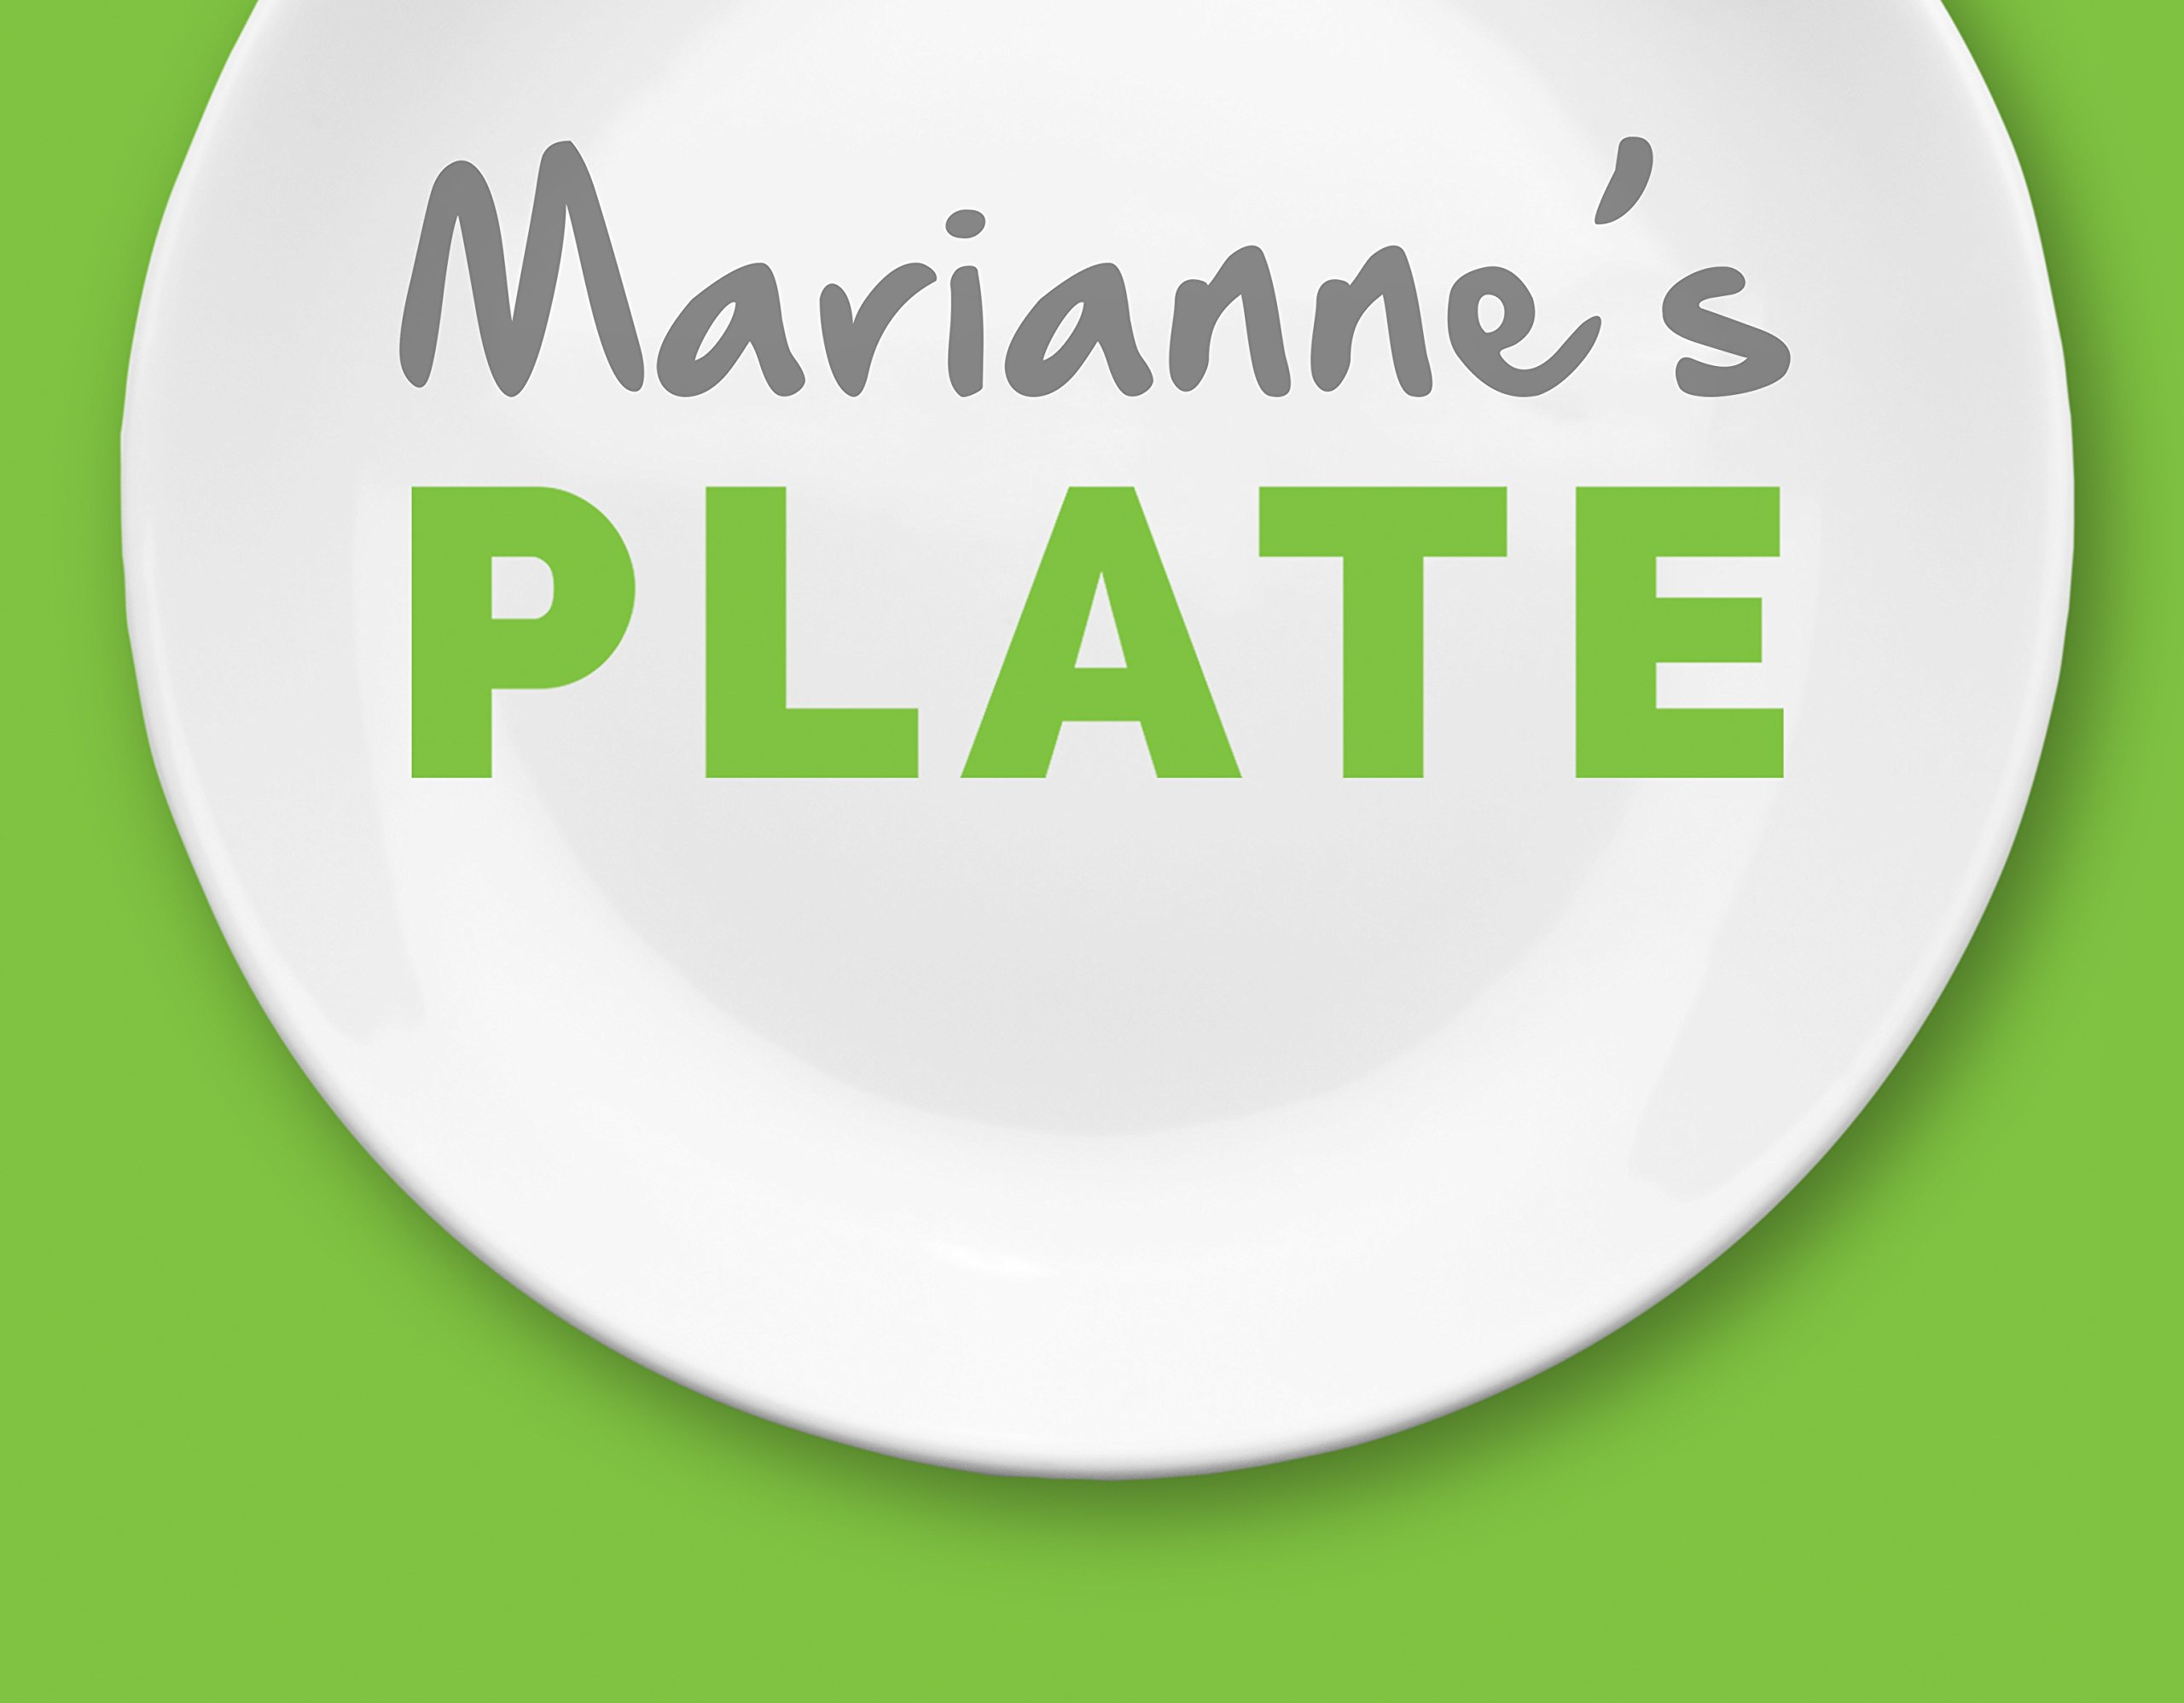 Marianne's Plate (Melamine Portion Plate) Plus Information Pamphlet by Marianne's PLATE (Image #5)